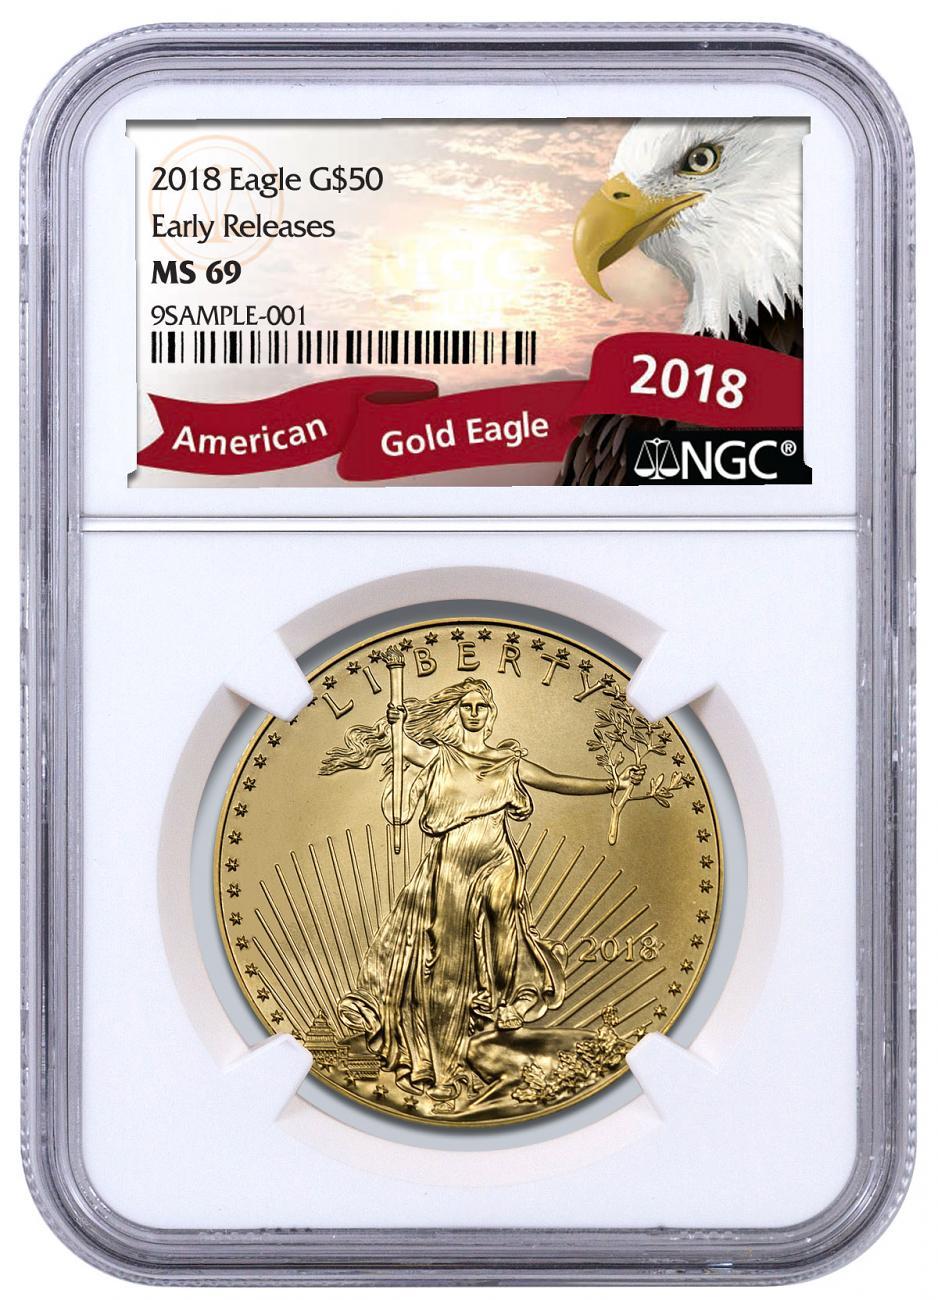 2018 1 oz Gold American Eagle $50 NGC MS69 ER Exclusive Eagle Label